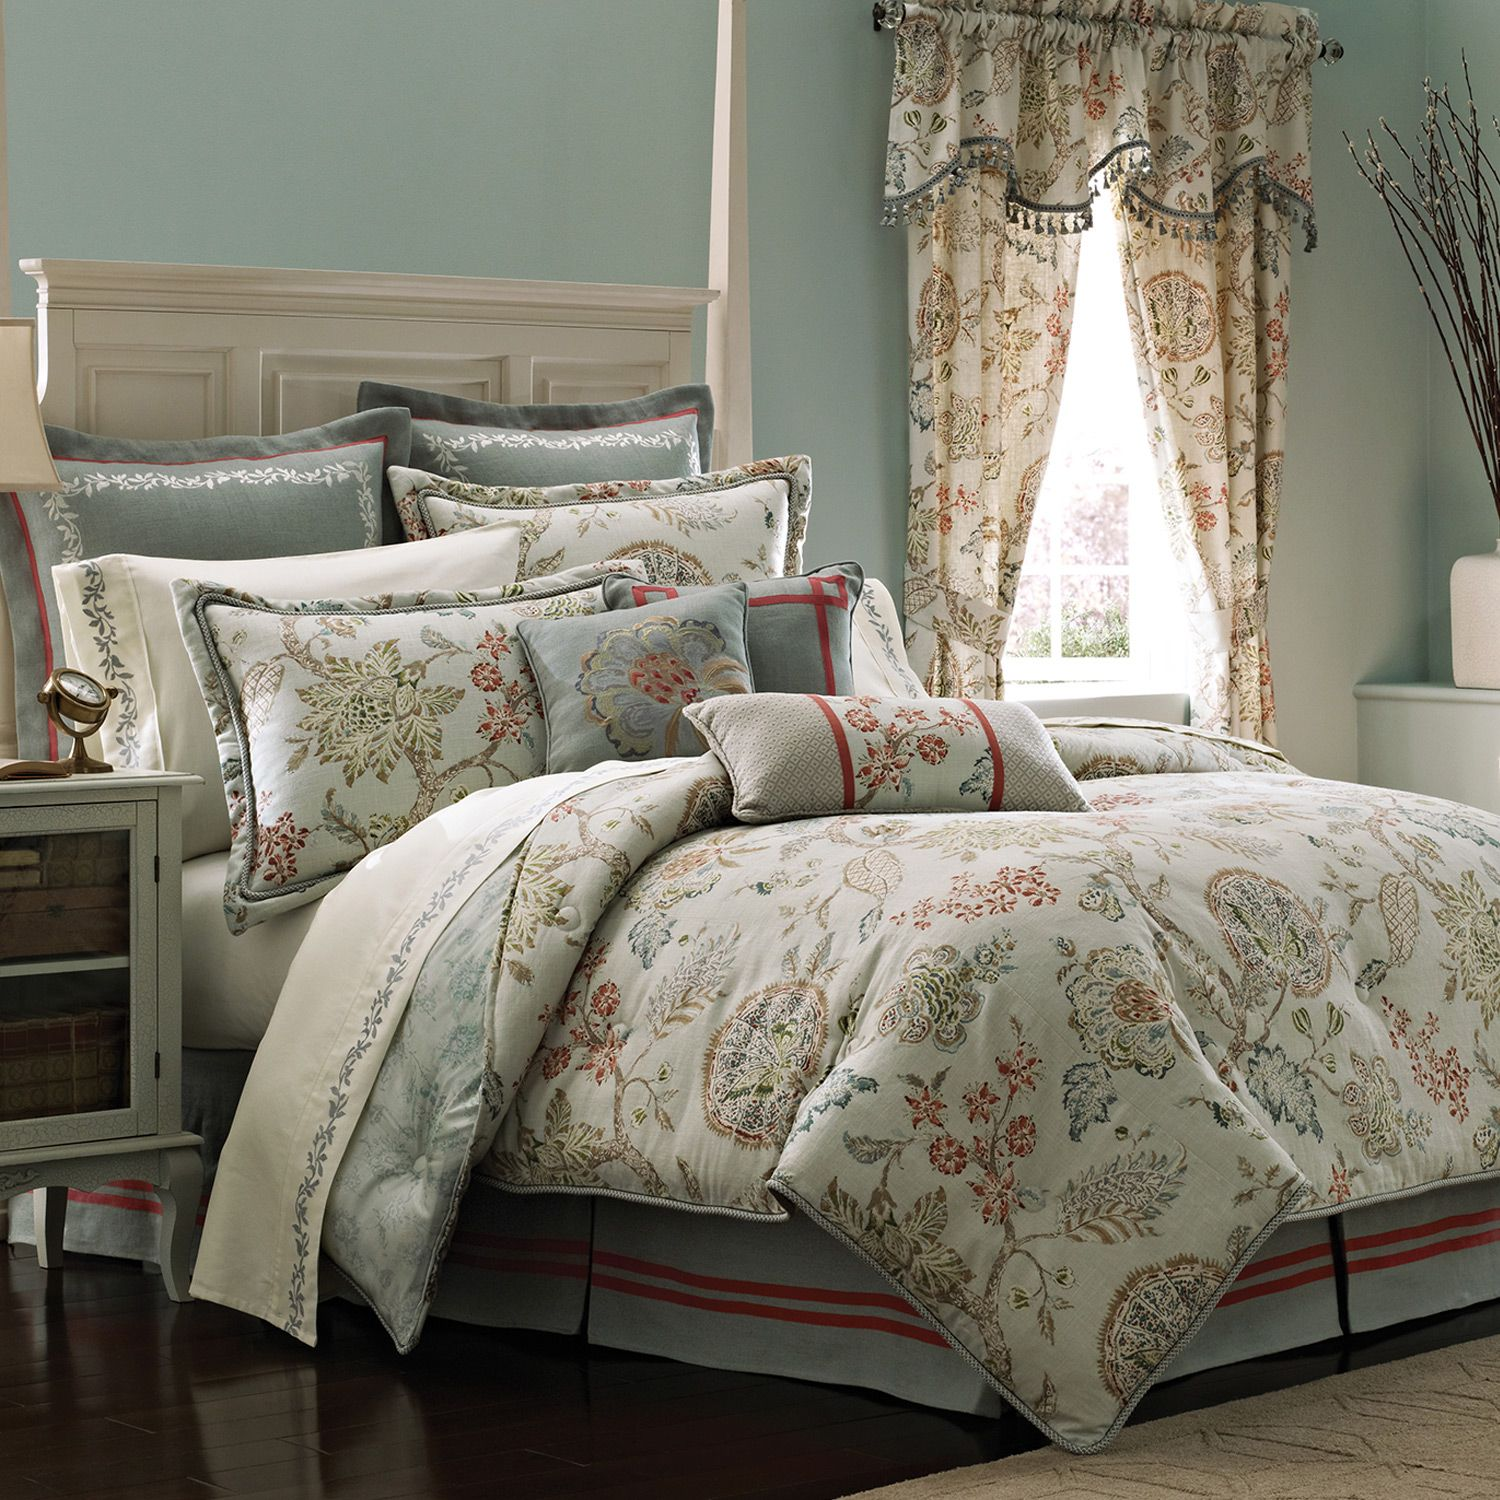 Awesome comforters sets for bedroom design with queen comforter sets